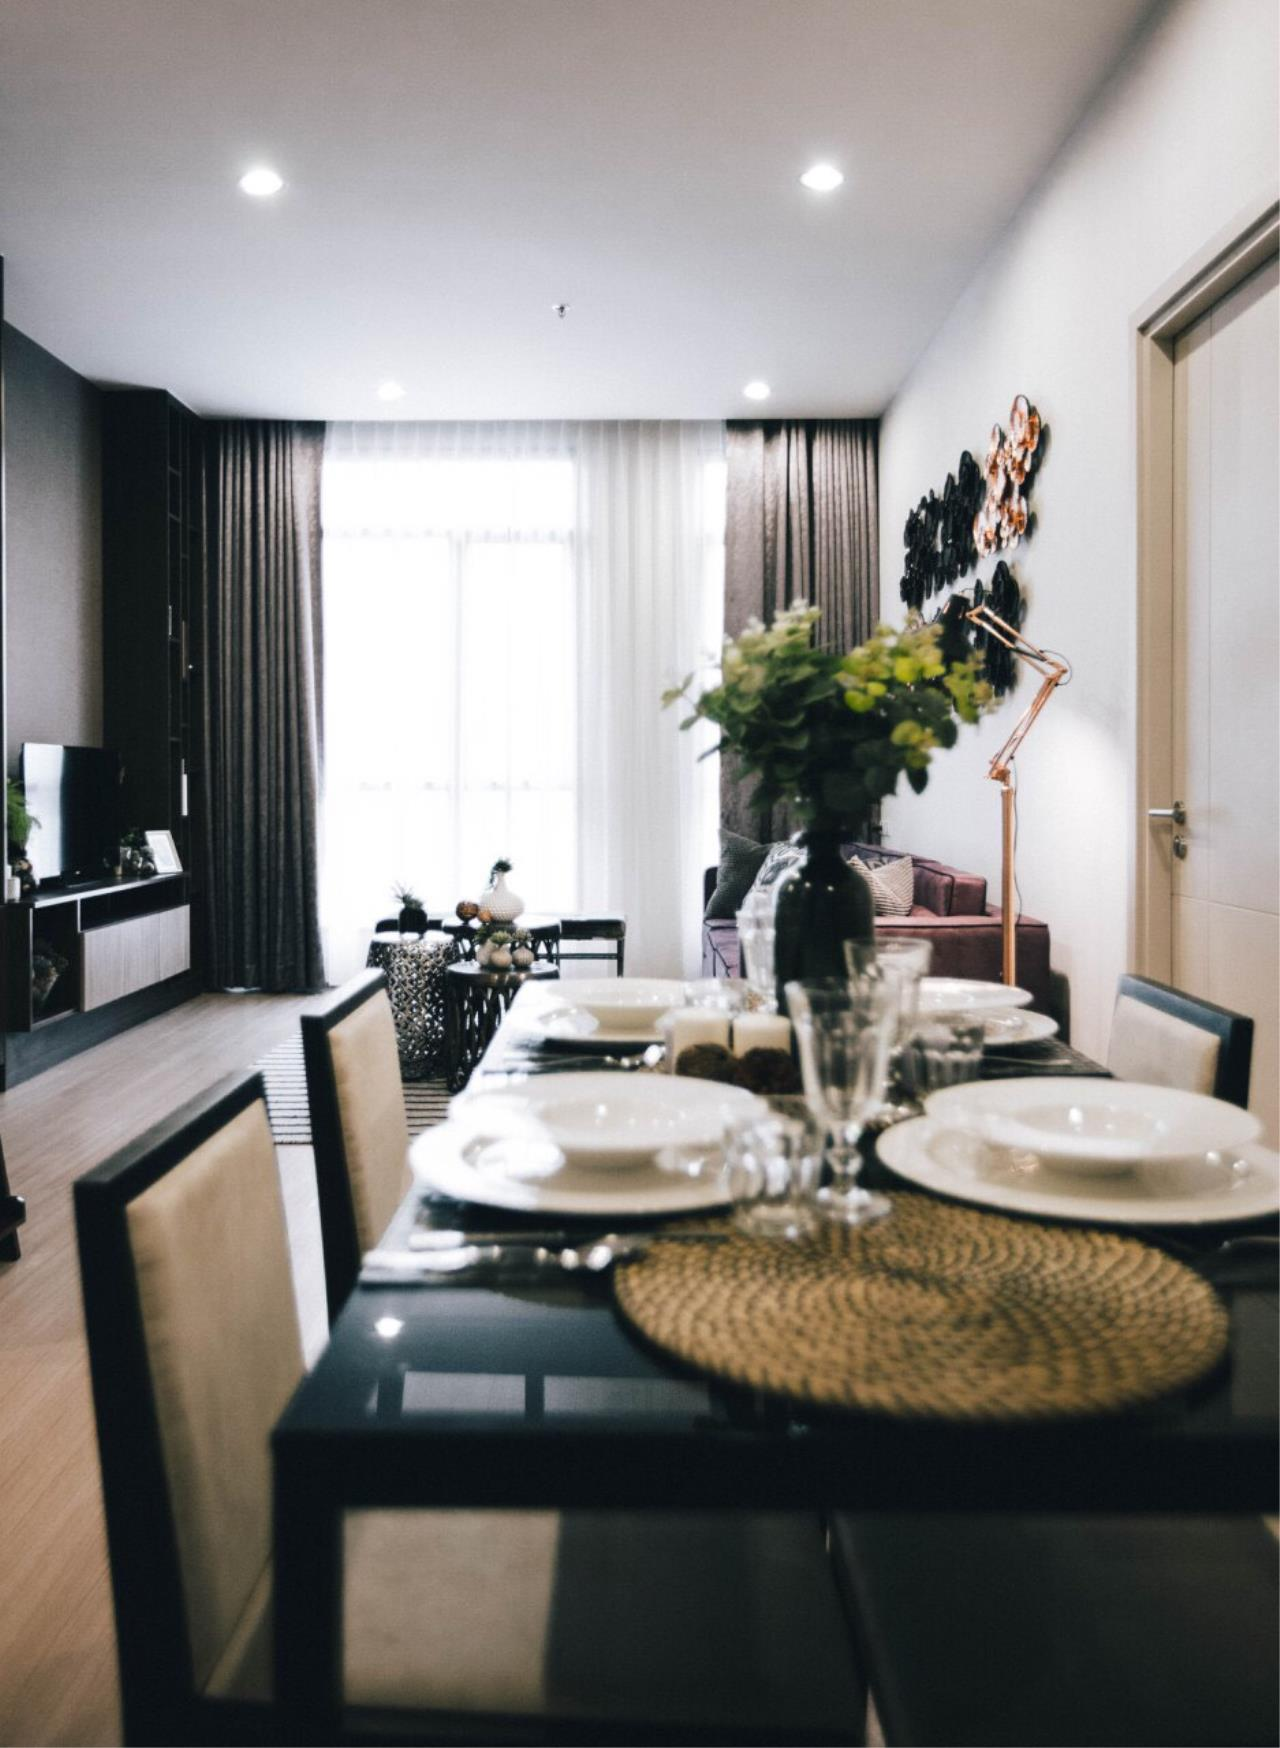 Siam Prop Agency's The Capital Ekamai-Thonglor Luxury Condo for rent, 3 Bedrooms with a private garden & 4 meters ceiling height 7